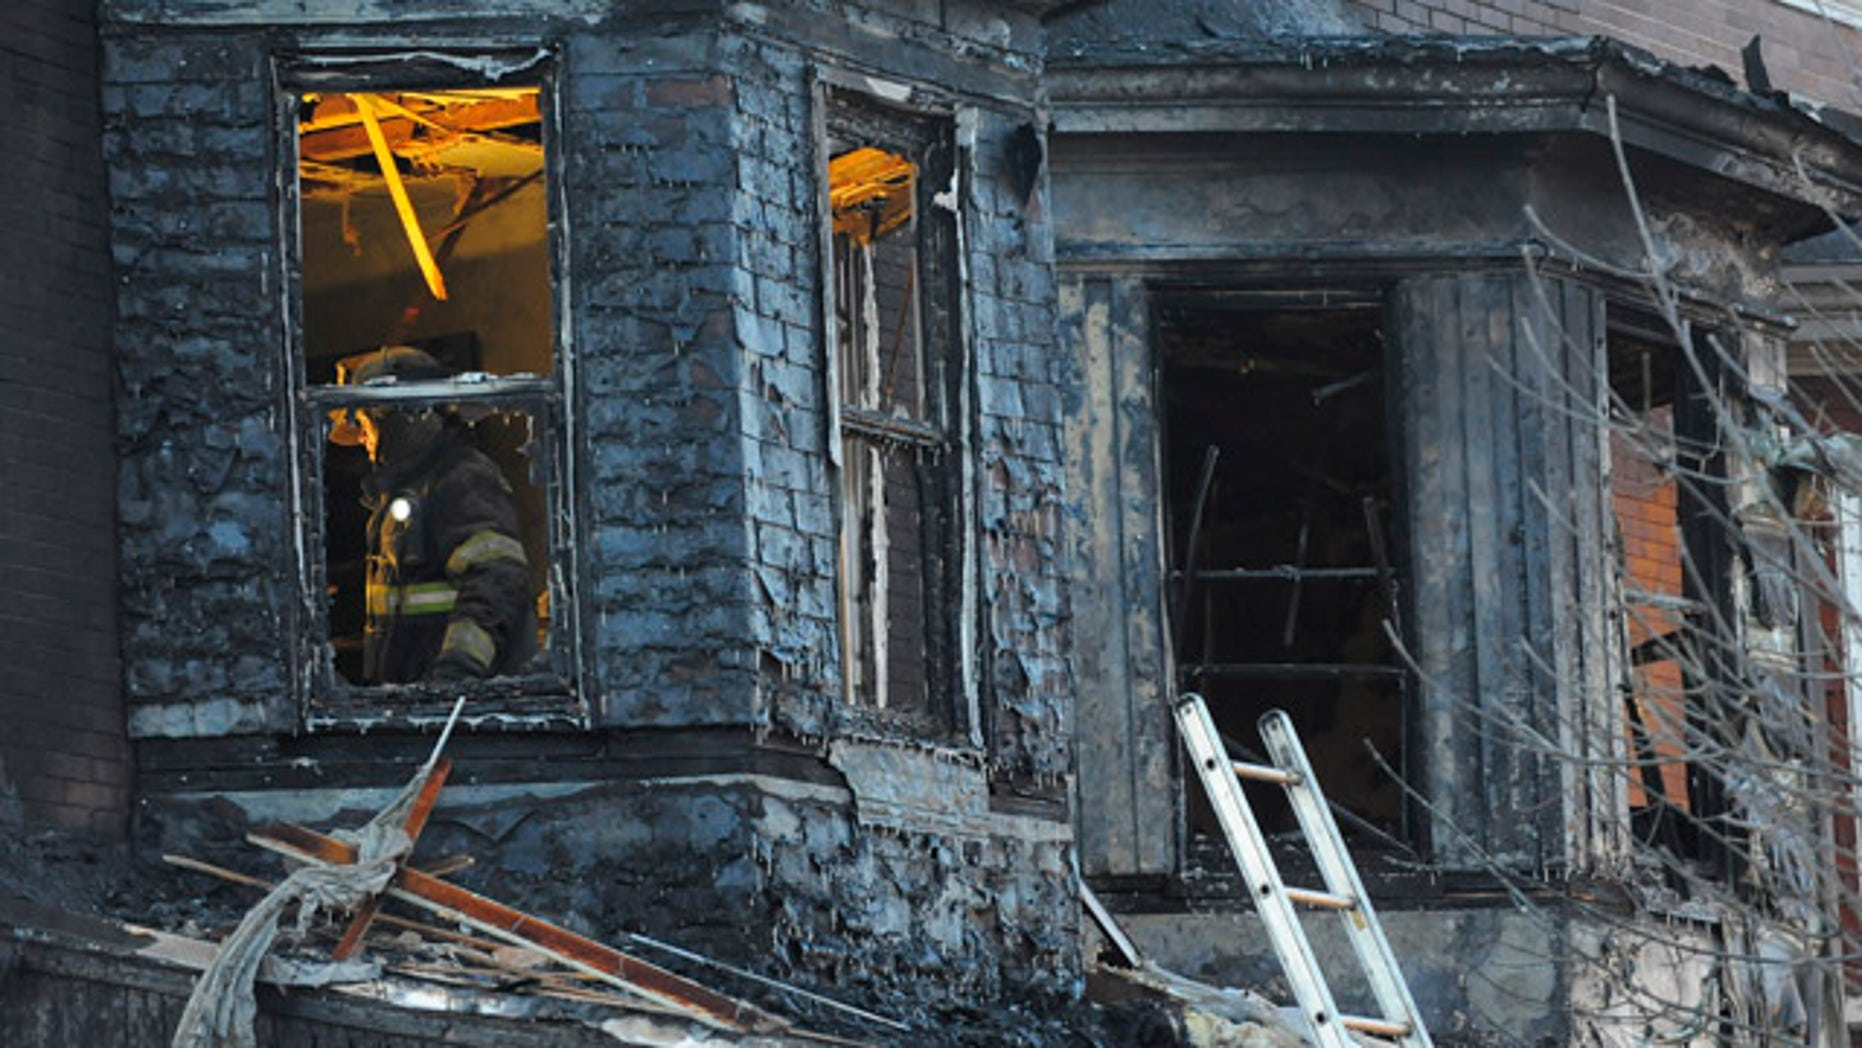 Dec. 14: Firefighters investigate the scene of an early morning two-alarm fire in the 2300 block of Homewood Ave. in East Baltimore.